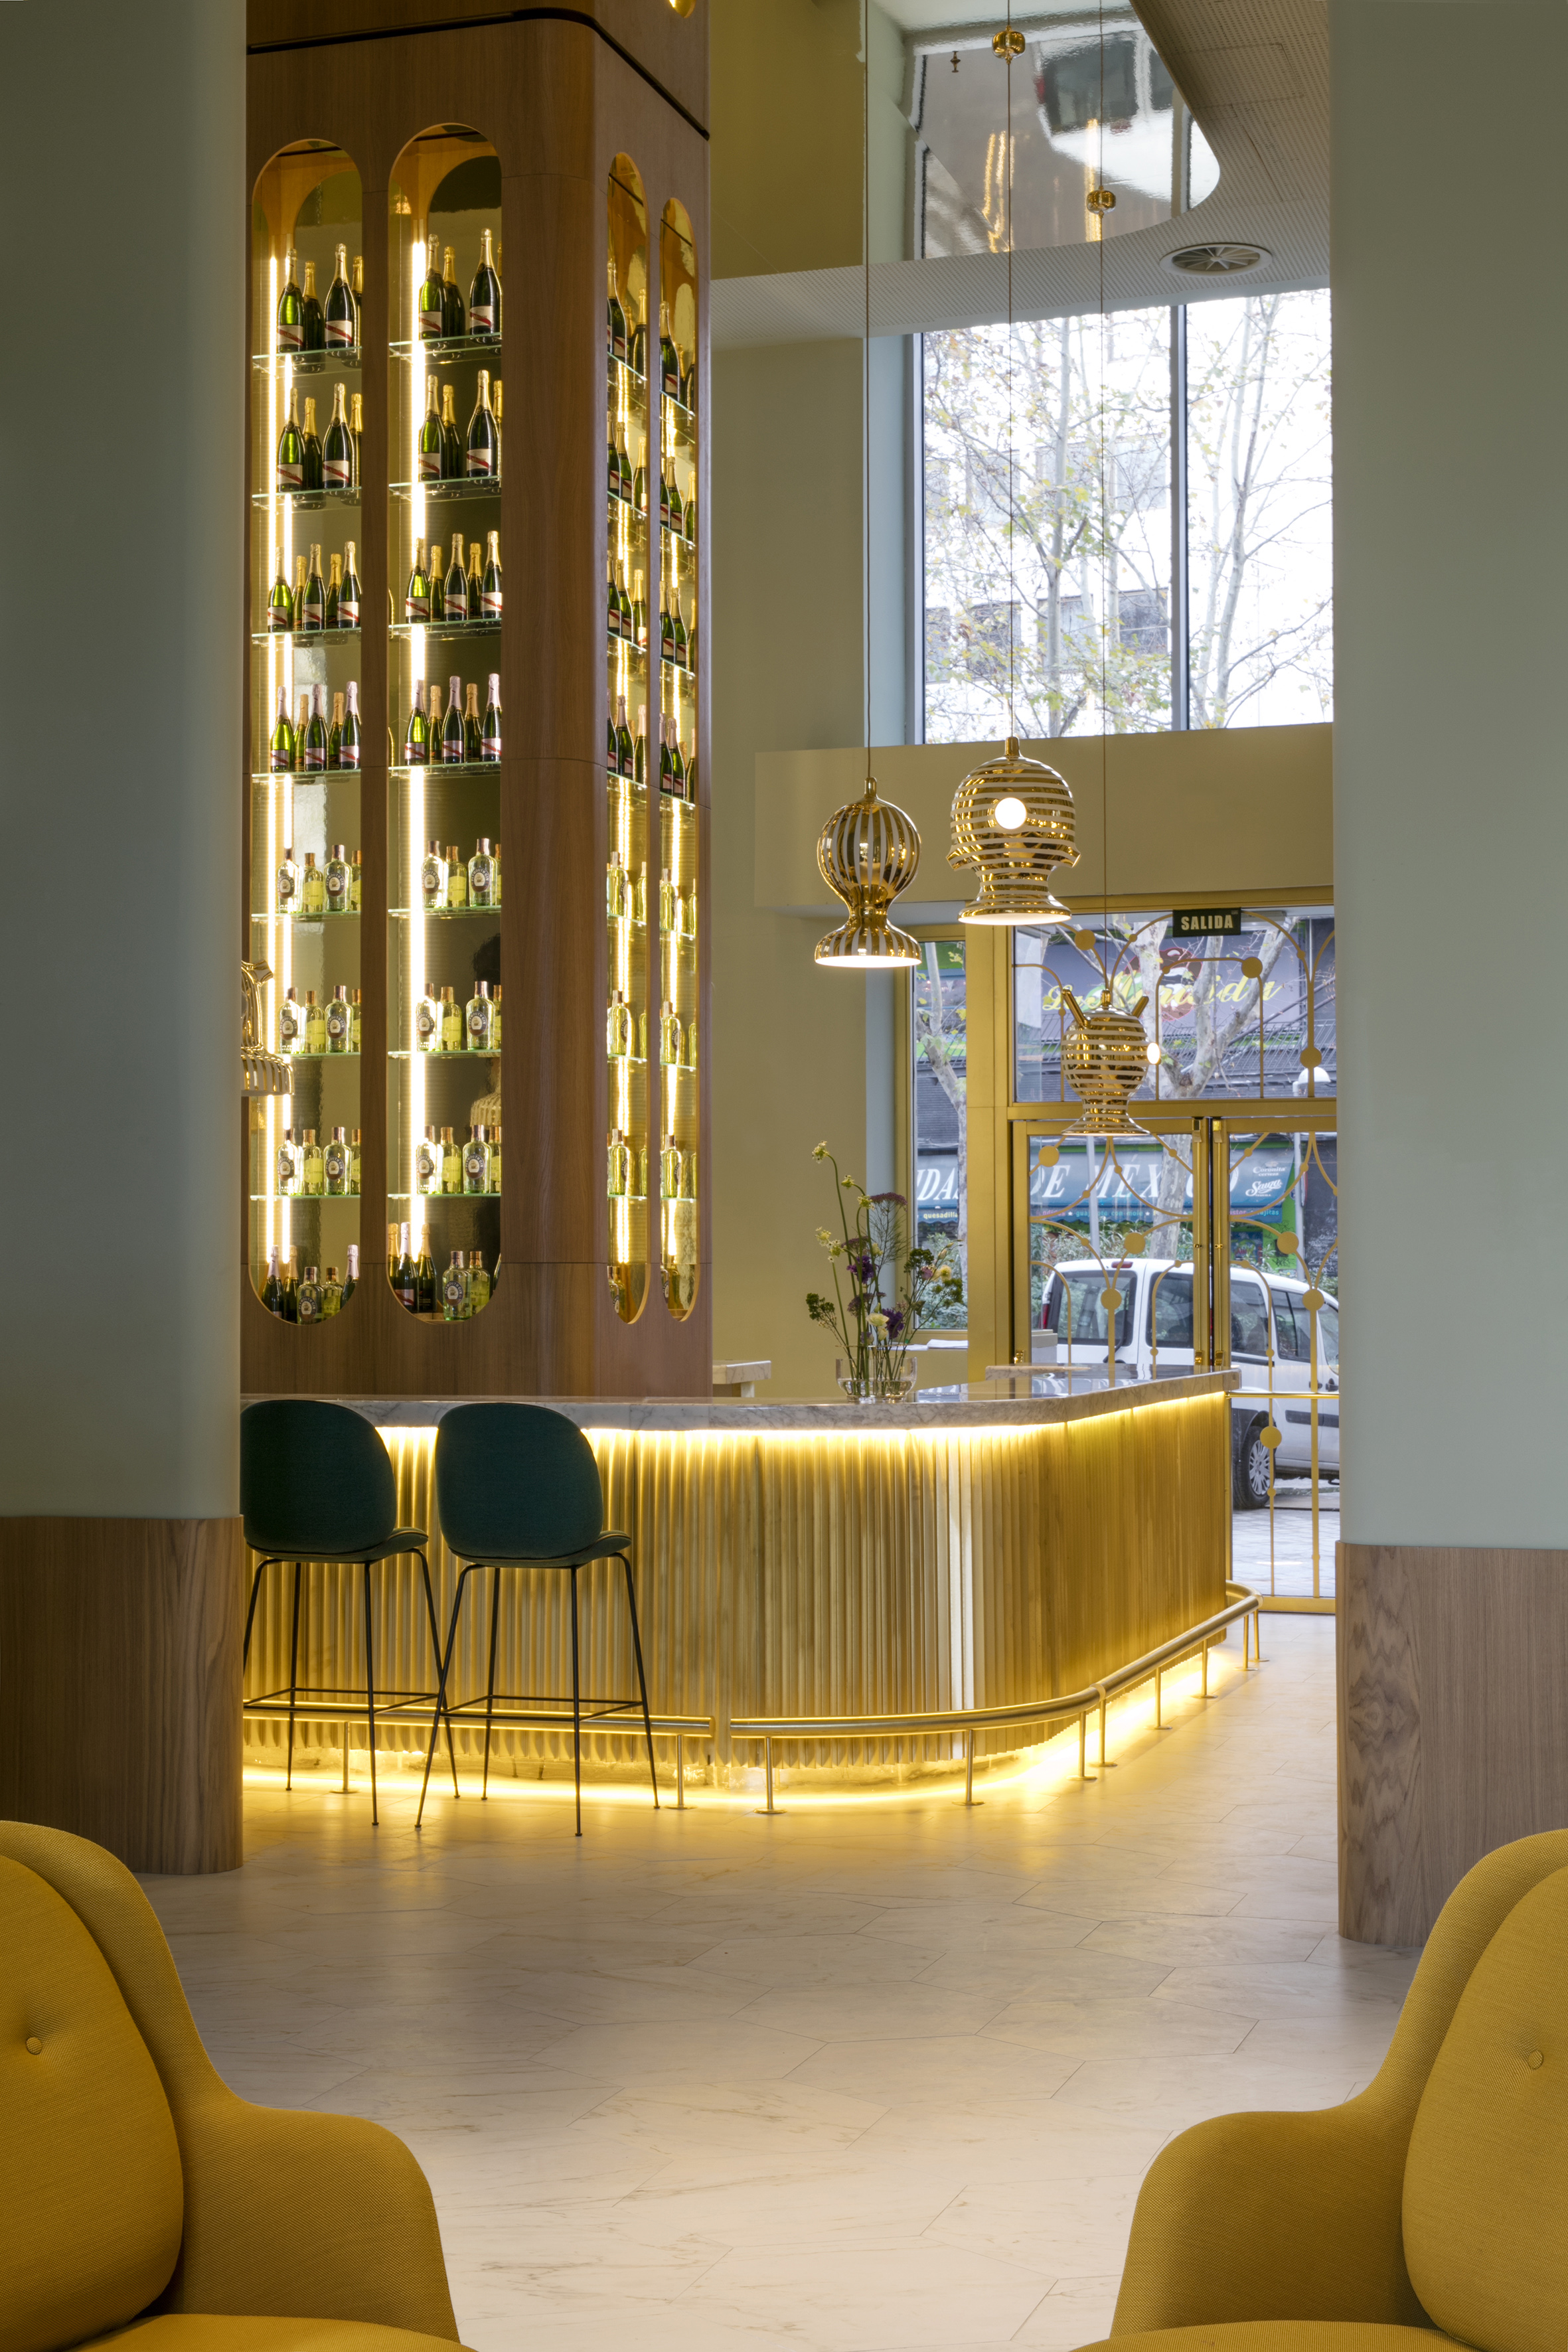 Garra Lobby Bar: Fri armchairs by Fritz Hansen; Beetle stool by Gubi; Ceramic hanging lights special design by Jaime Hayon for Hotel Barceló Torre de Madrid